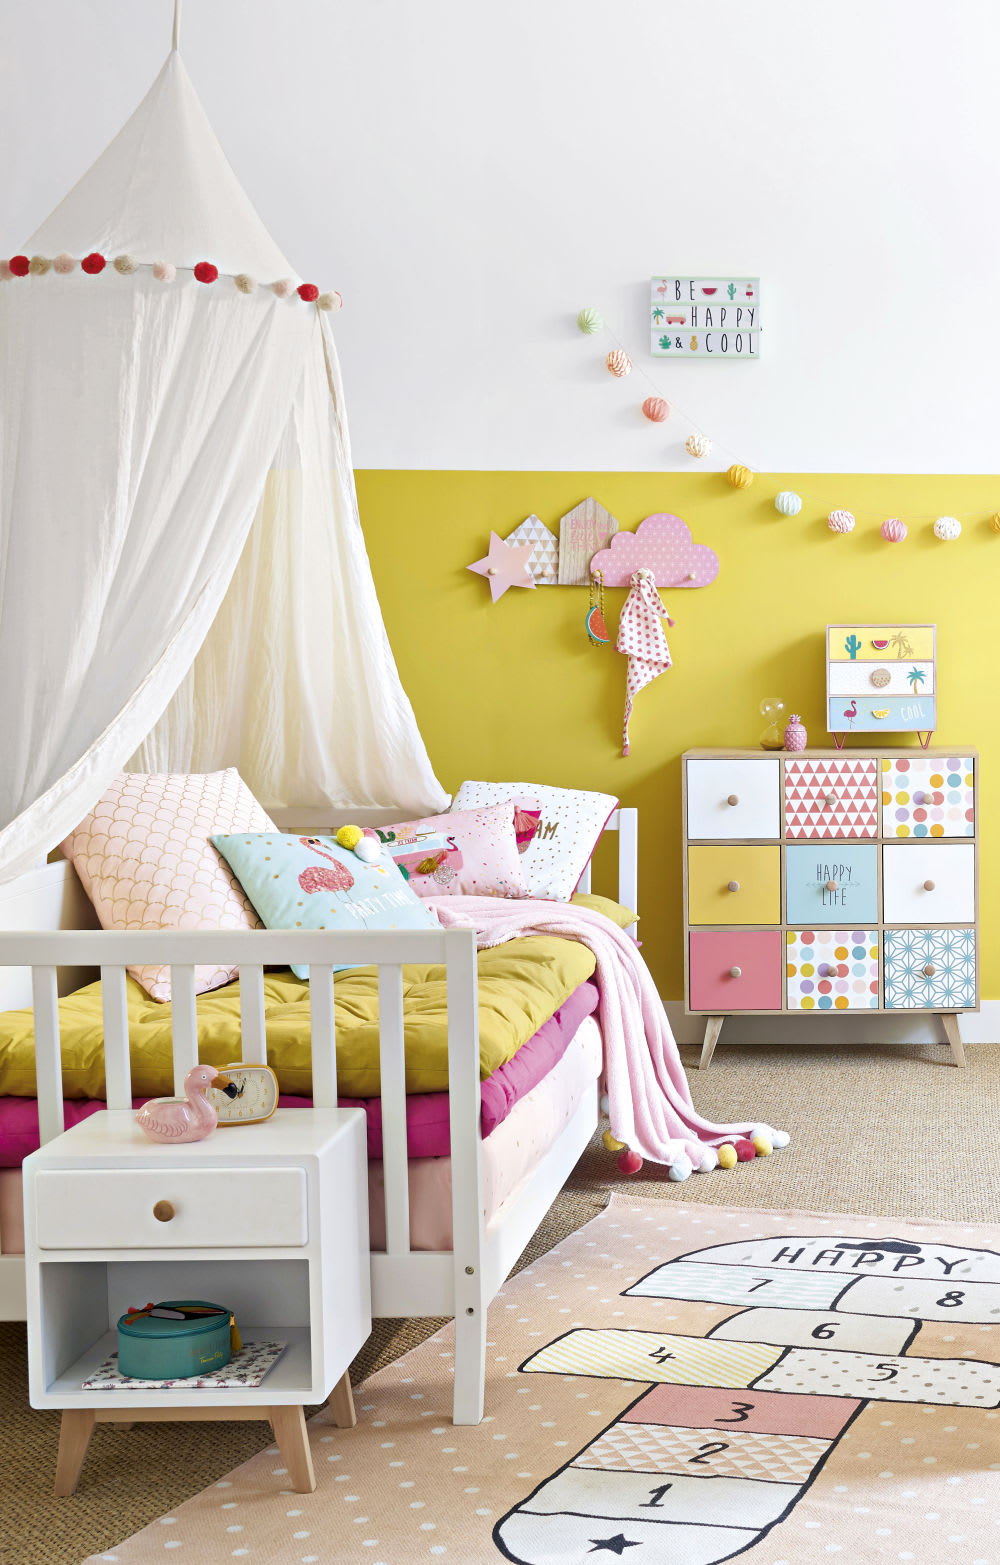 parure de lit enfant en coton blanc rose et dor imprim. Black Bedroom Furniture Sets. Home Design Ideas